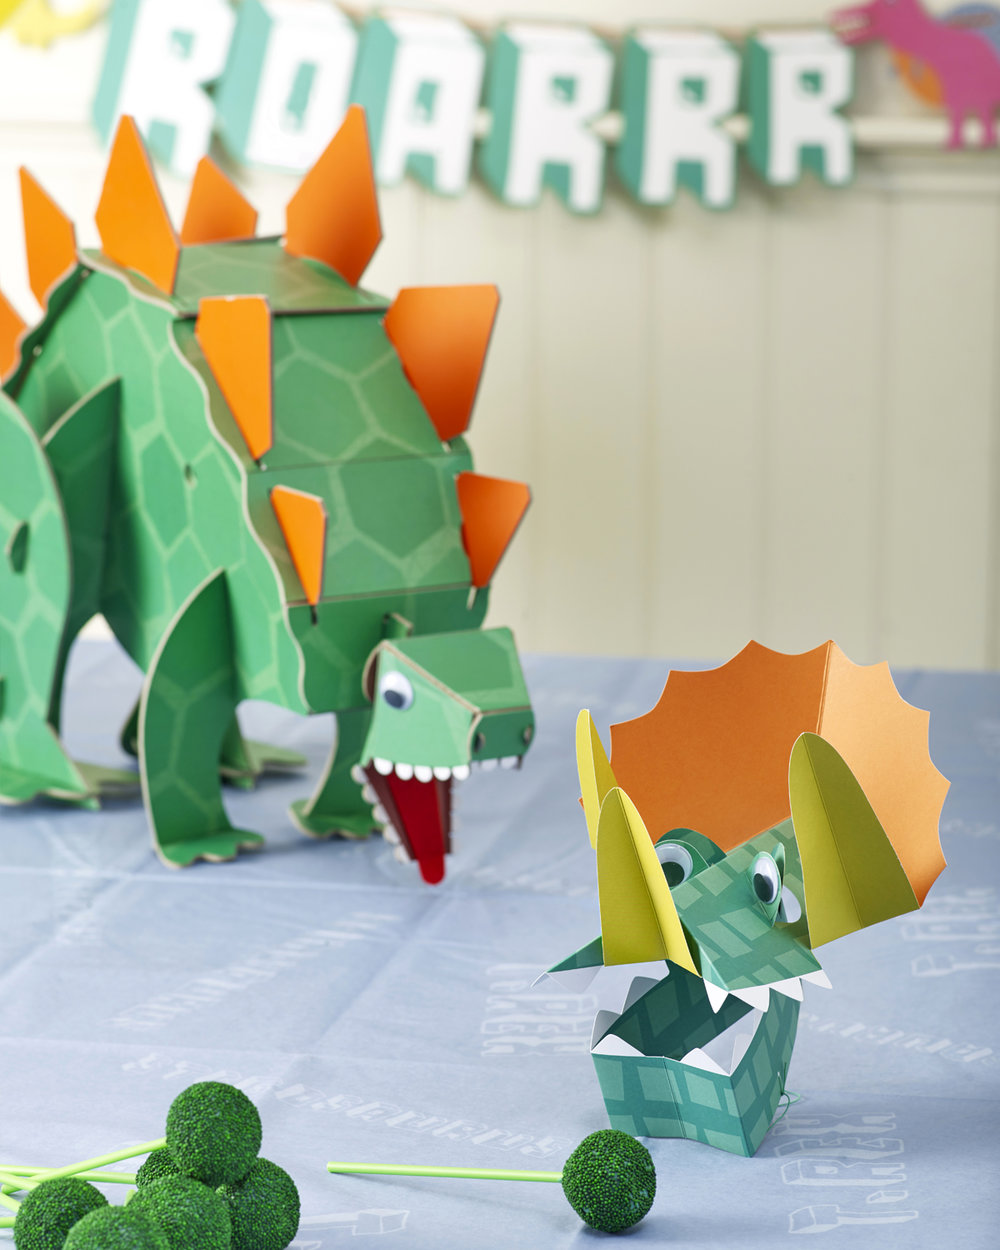 """GEORGE'S 1ST BIRTHDAY DINOSAUR PARTY  George absolutely loves dinosaurs, so it was very easy to pick a party theme to suit him. The Stegosaurus centrepiece was a big hit, with a wobbly head, googly eyes and a button to press that """"roared"""" loudly. This entertained all the guests during their lunch, which included cupcakes with 3D dinosaur toppers and cake pops in a coordinating green colour. The party hats were 3D triceratops with googly eyes that the guests just loved running around making dinosaur noises in!! Decorations included a bright coloured dinosaur banner that complimented the tableware and bright balloons with crepe streamers. A truly jurassic party suitable for any young budding paleontologist!"""